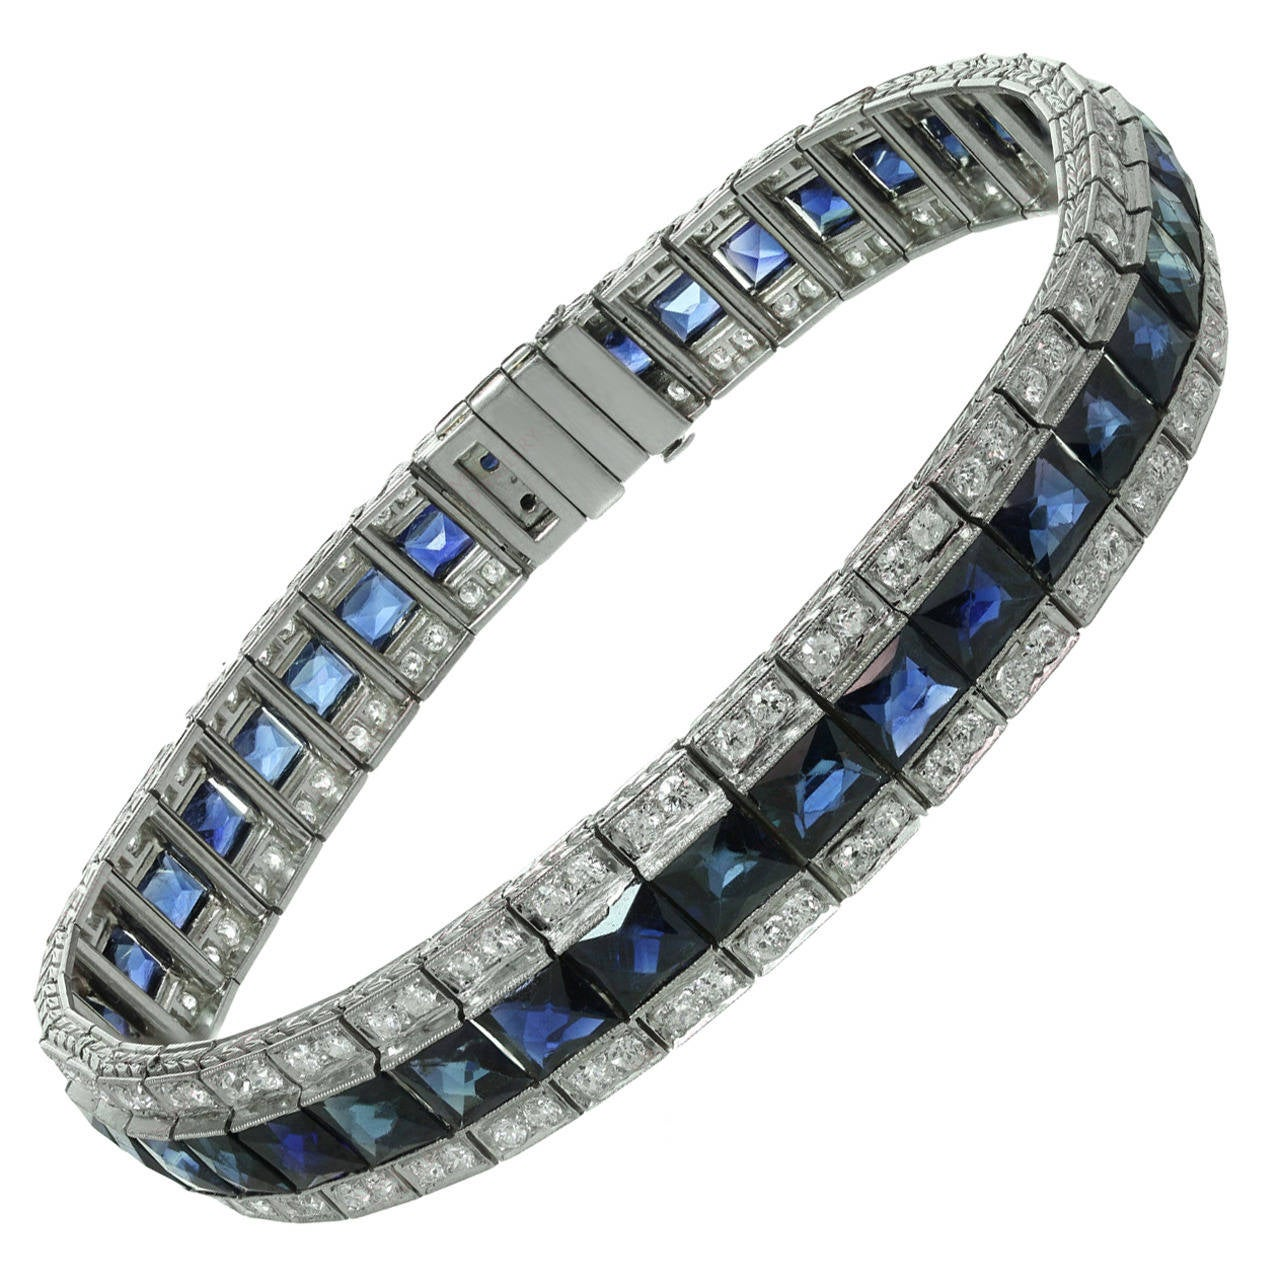 1930s tiffany and co art deco diamond french cut sapphire bracelet for sale at 1stdibs. Black Bedroom Furniture Sets. Home Design Ideas